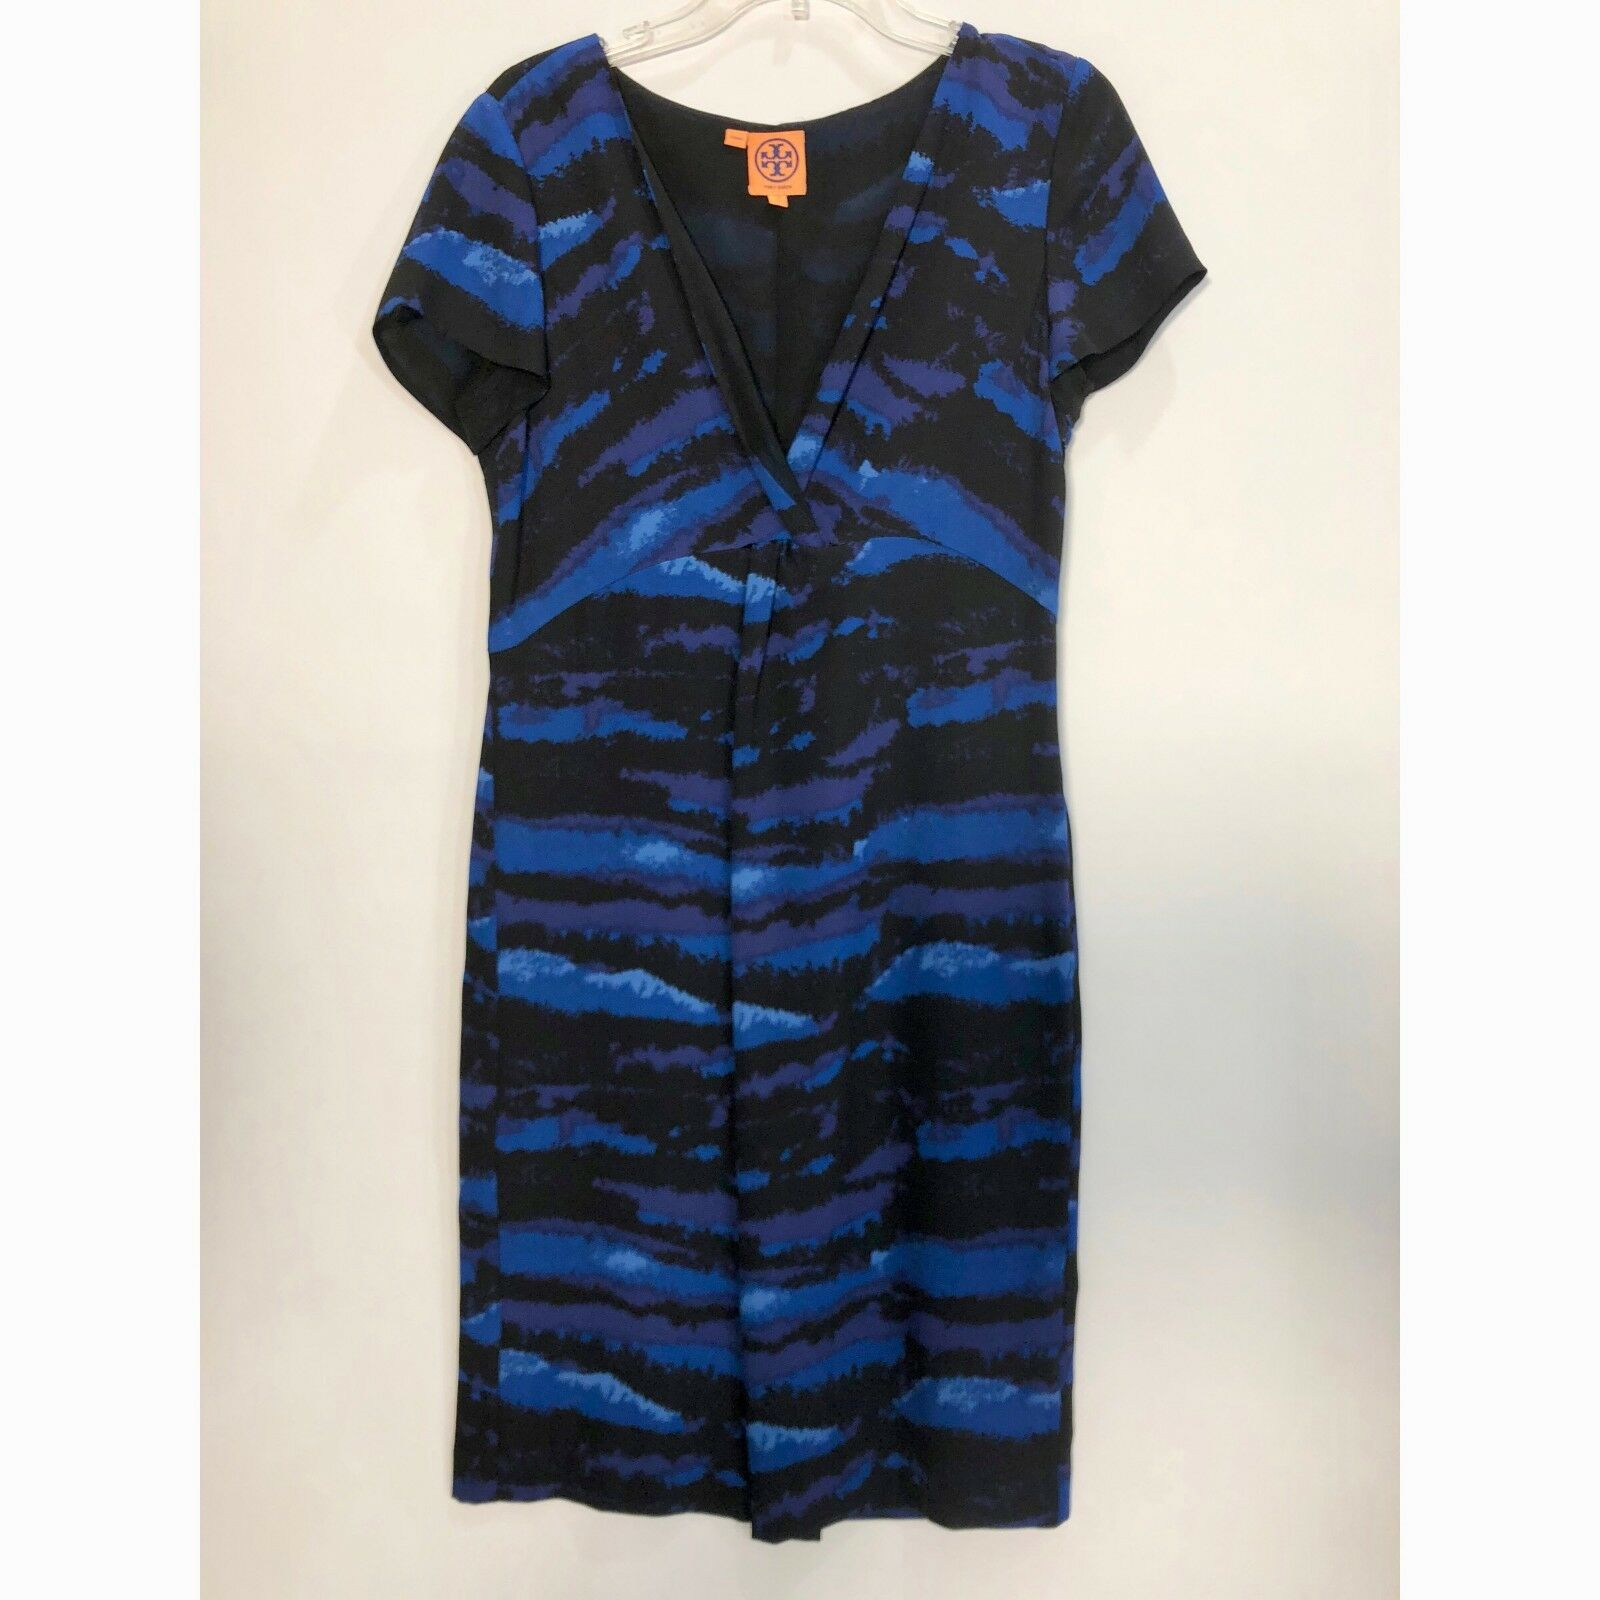 Tory Burch Silk Woherren Dress Zebra Print Blau   schwarz Größe 10 Side Zipper